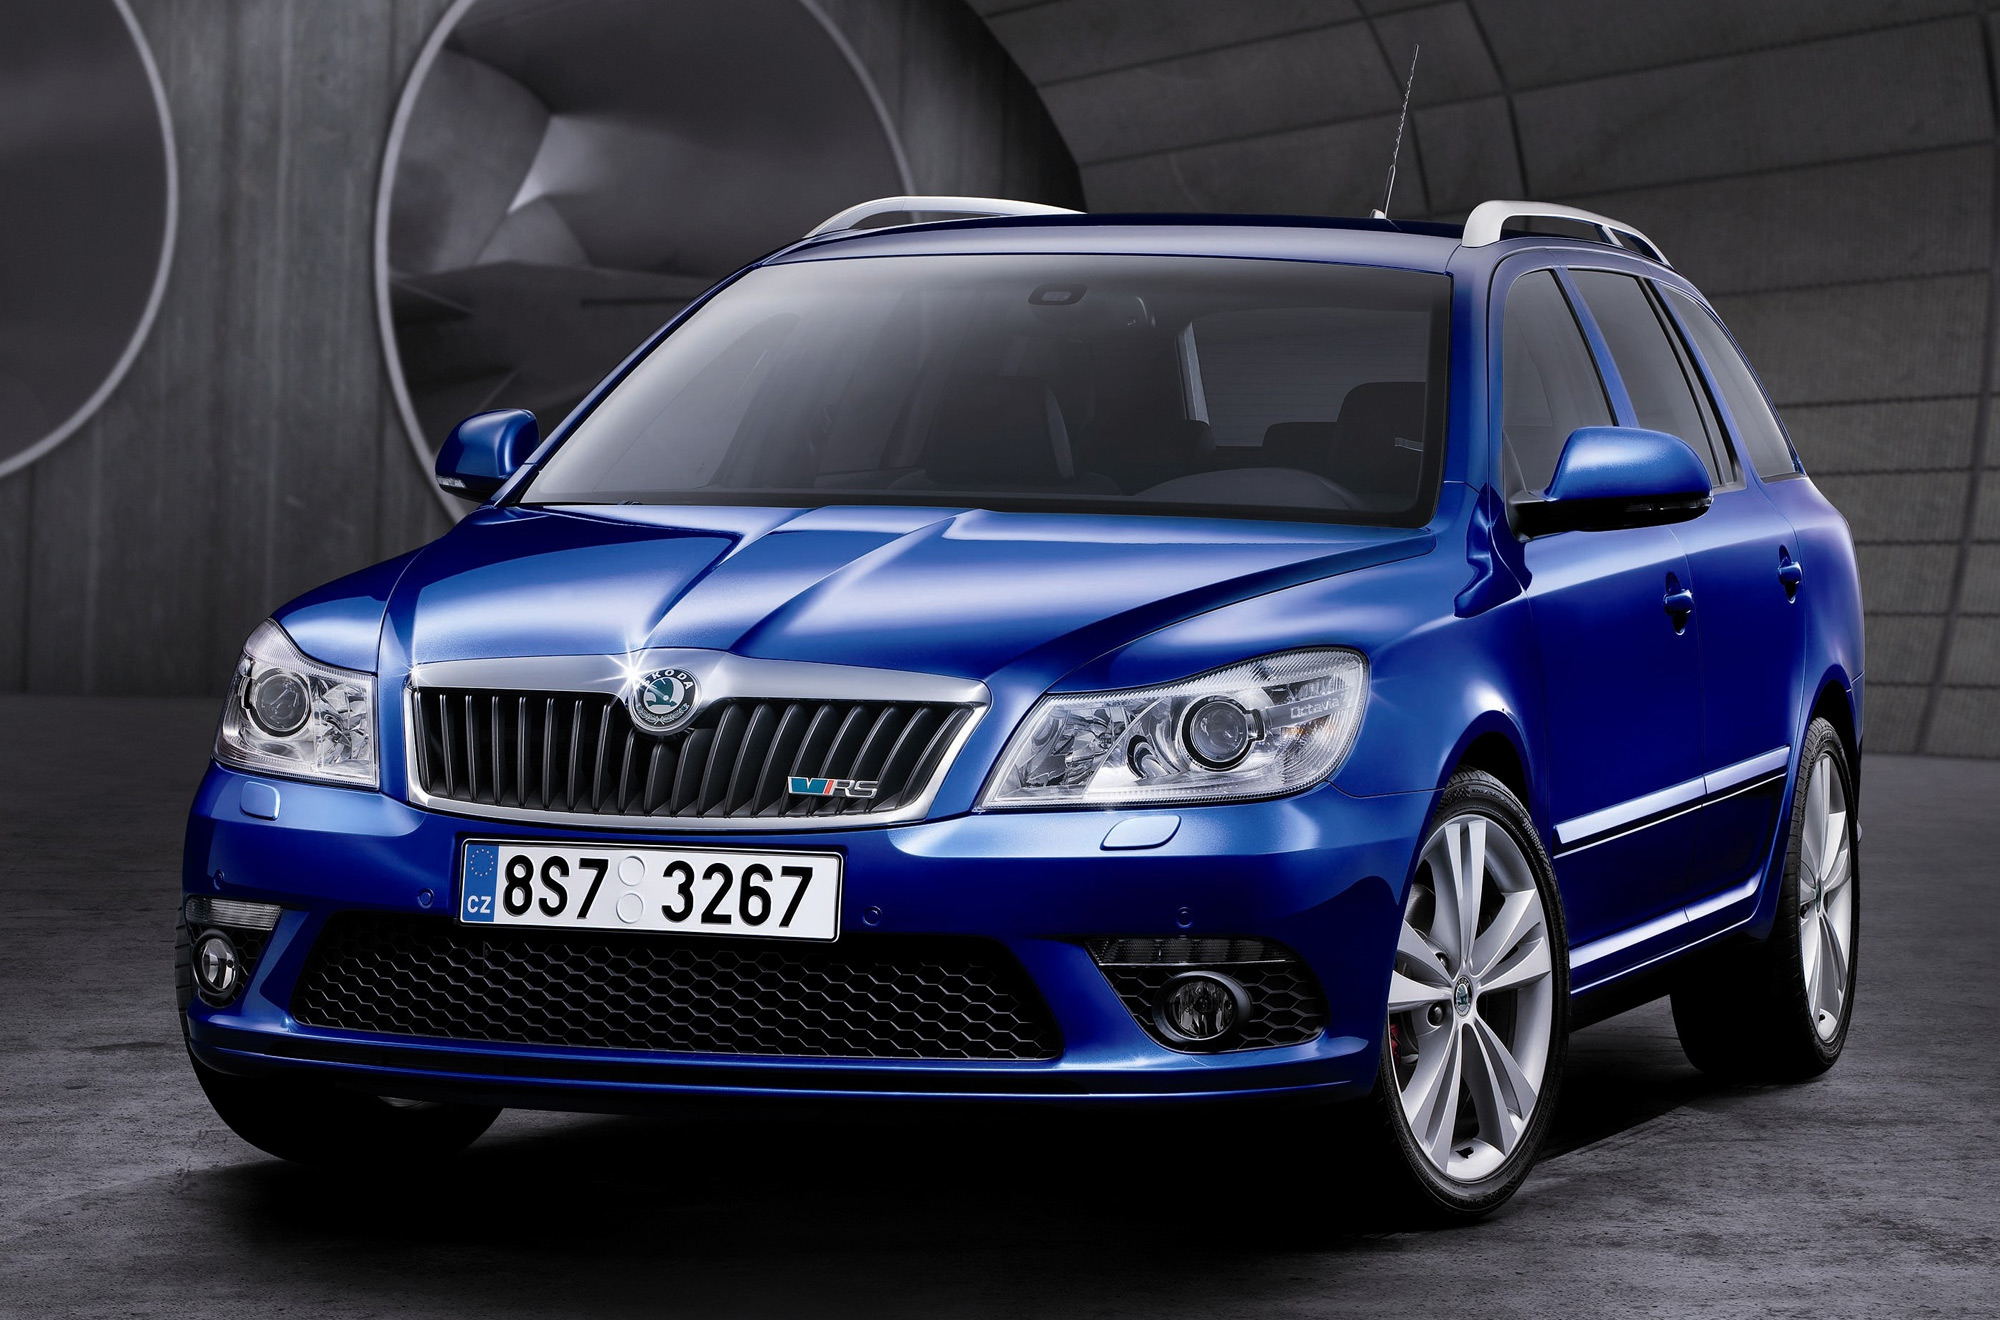 skoda octavia vrs diesel estate 2009. Black Bedroom Furniture Sets. Home Design Ideas